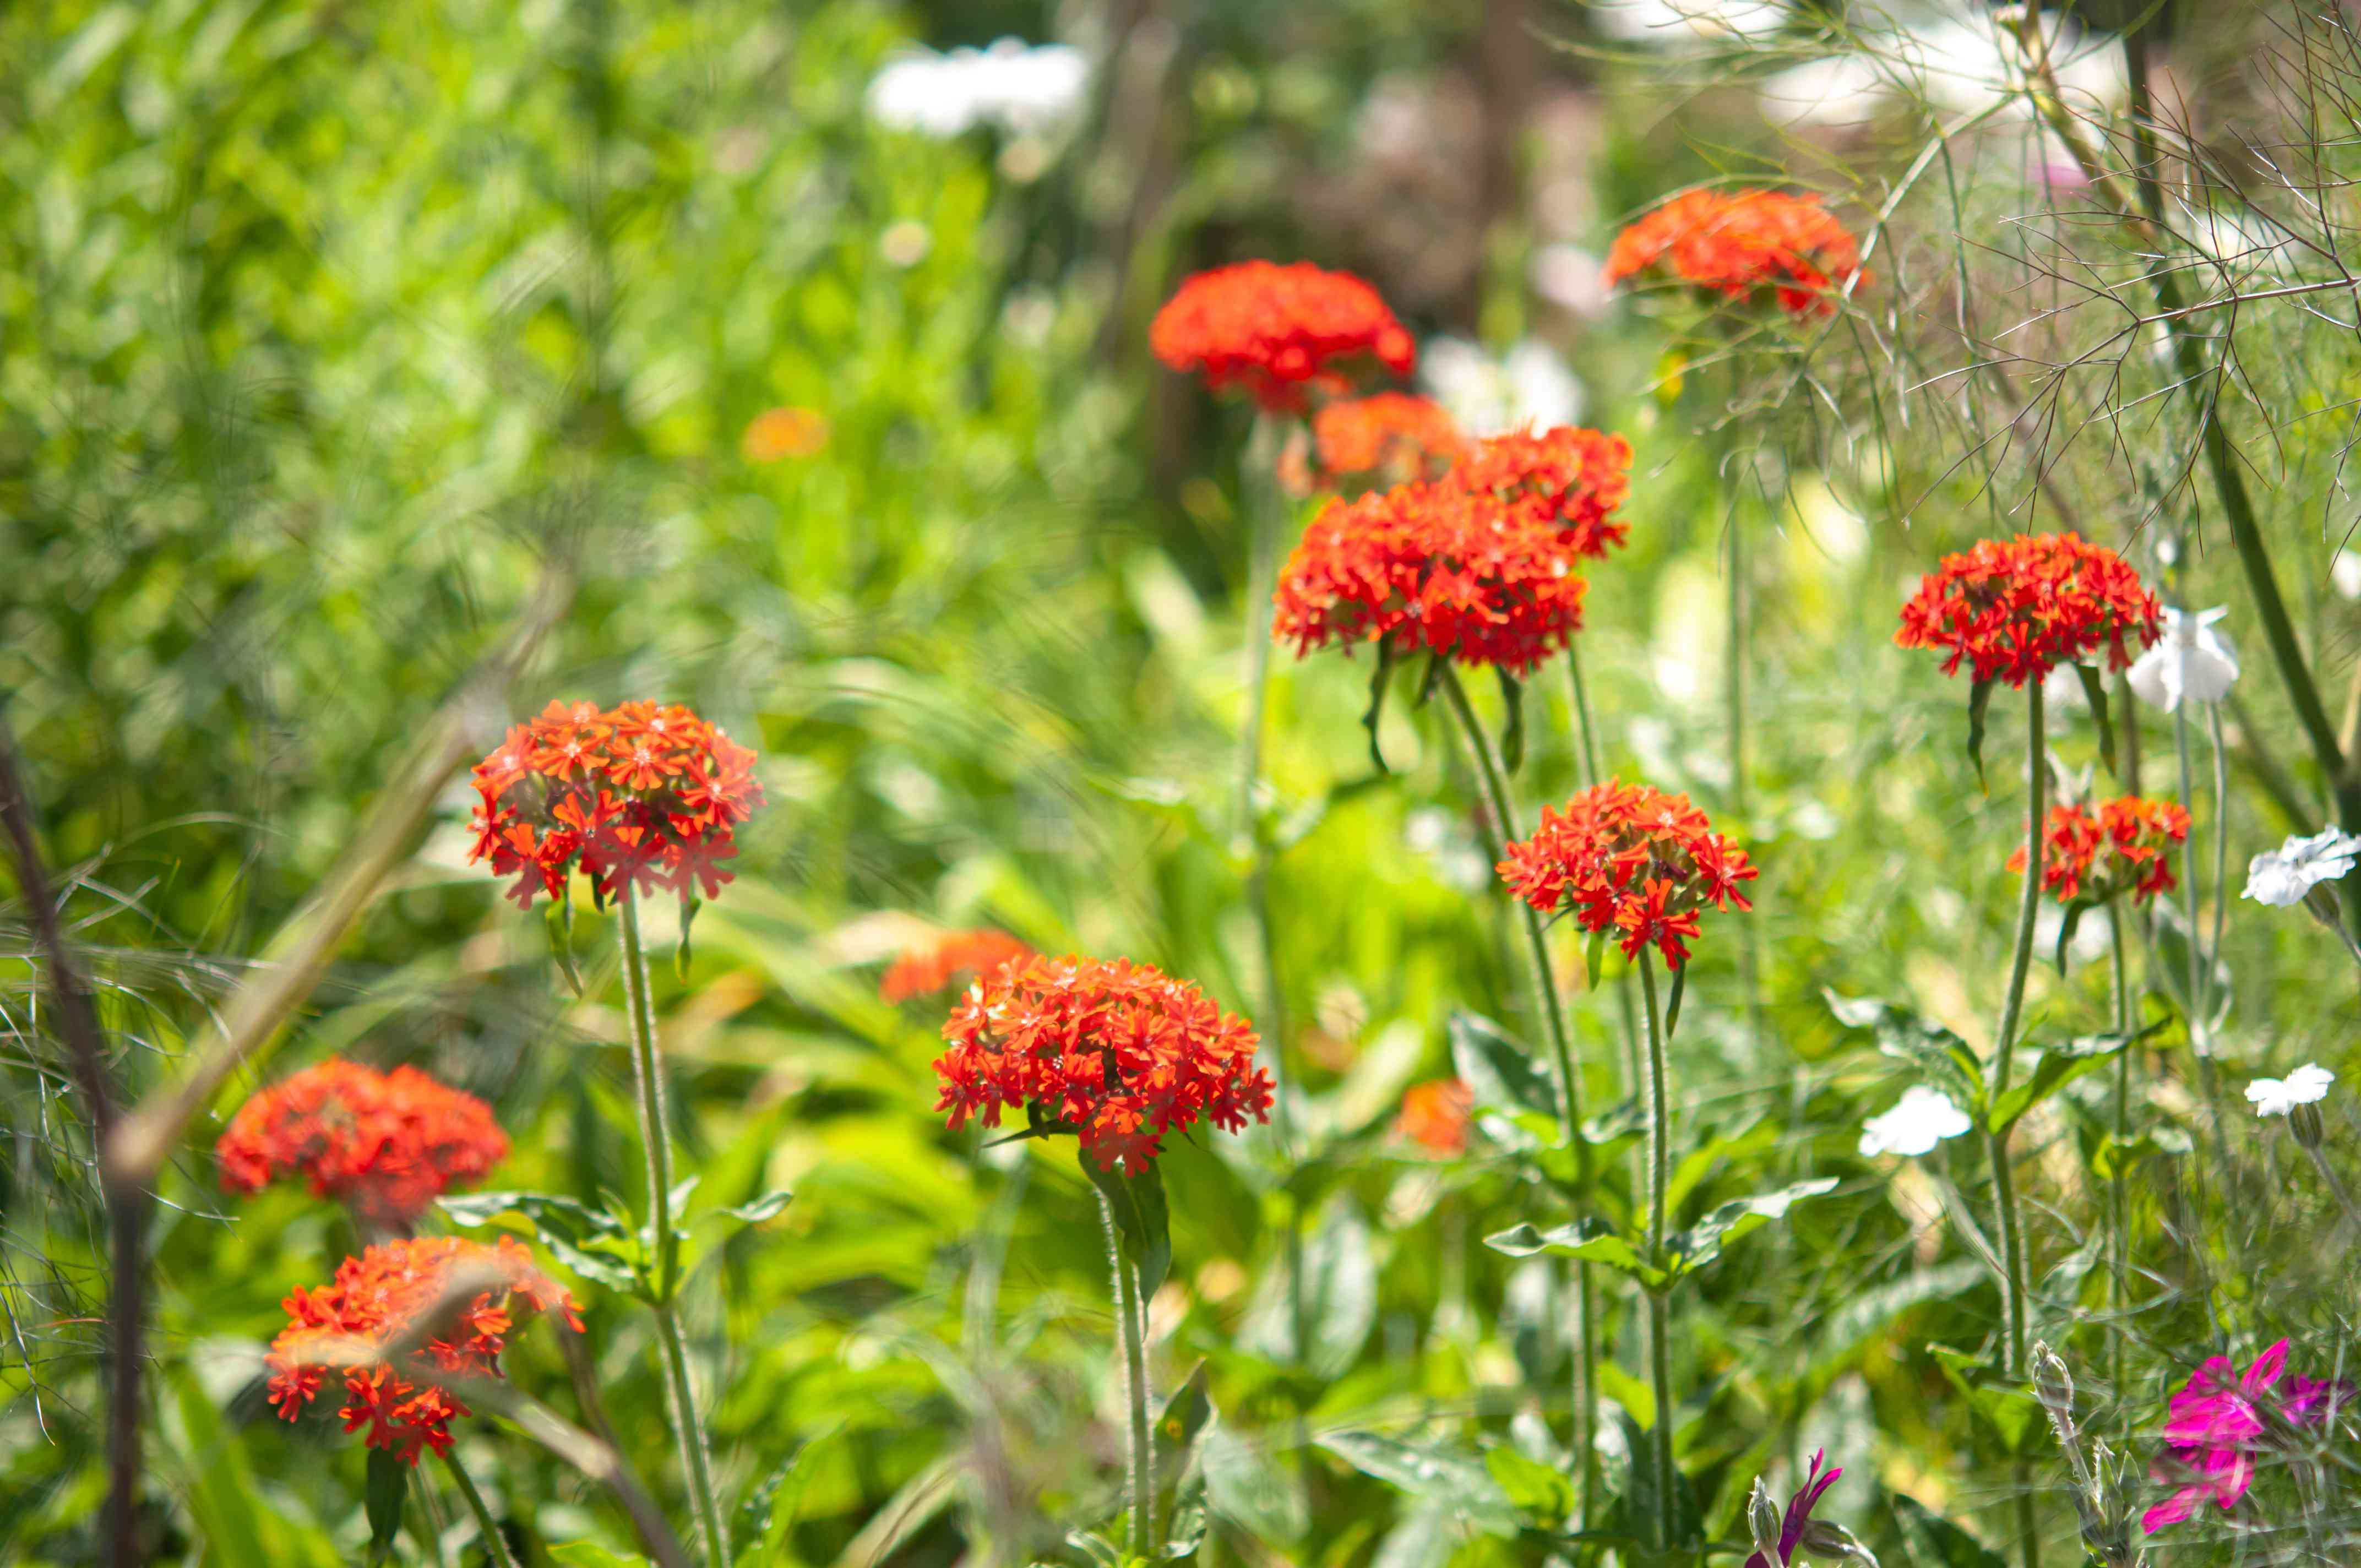 Maltese cross plants with orange-red flower clusters on thin stems